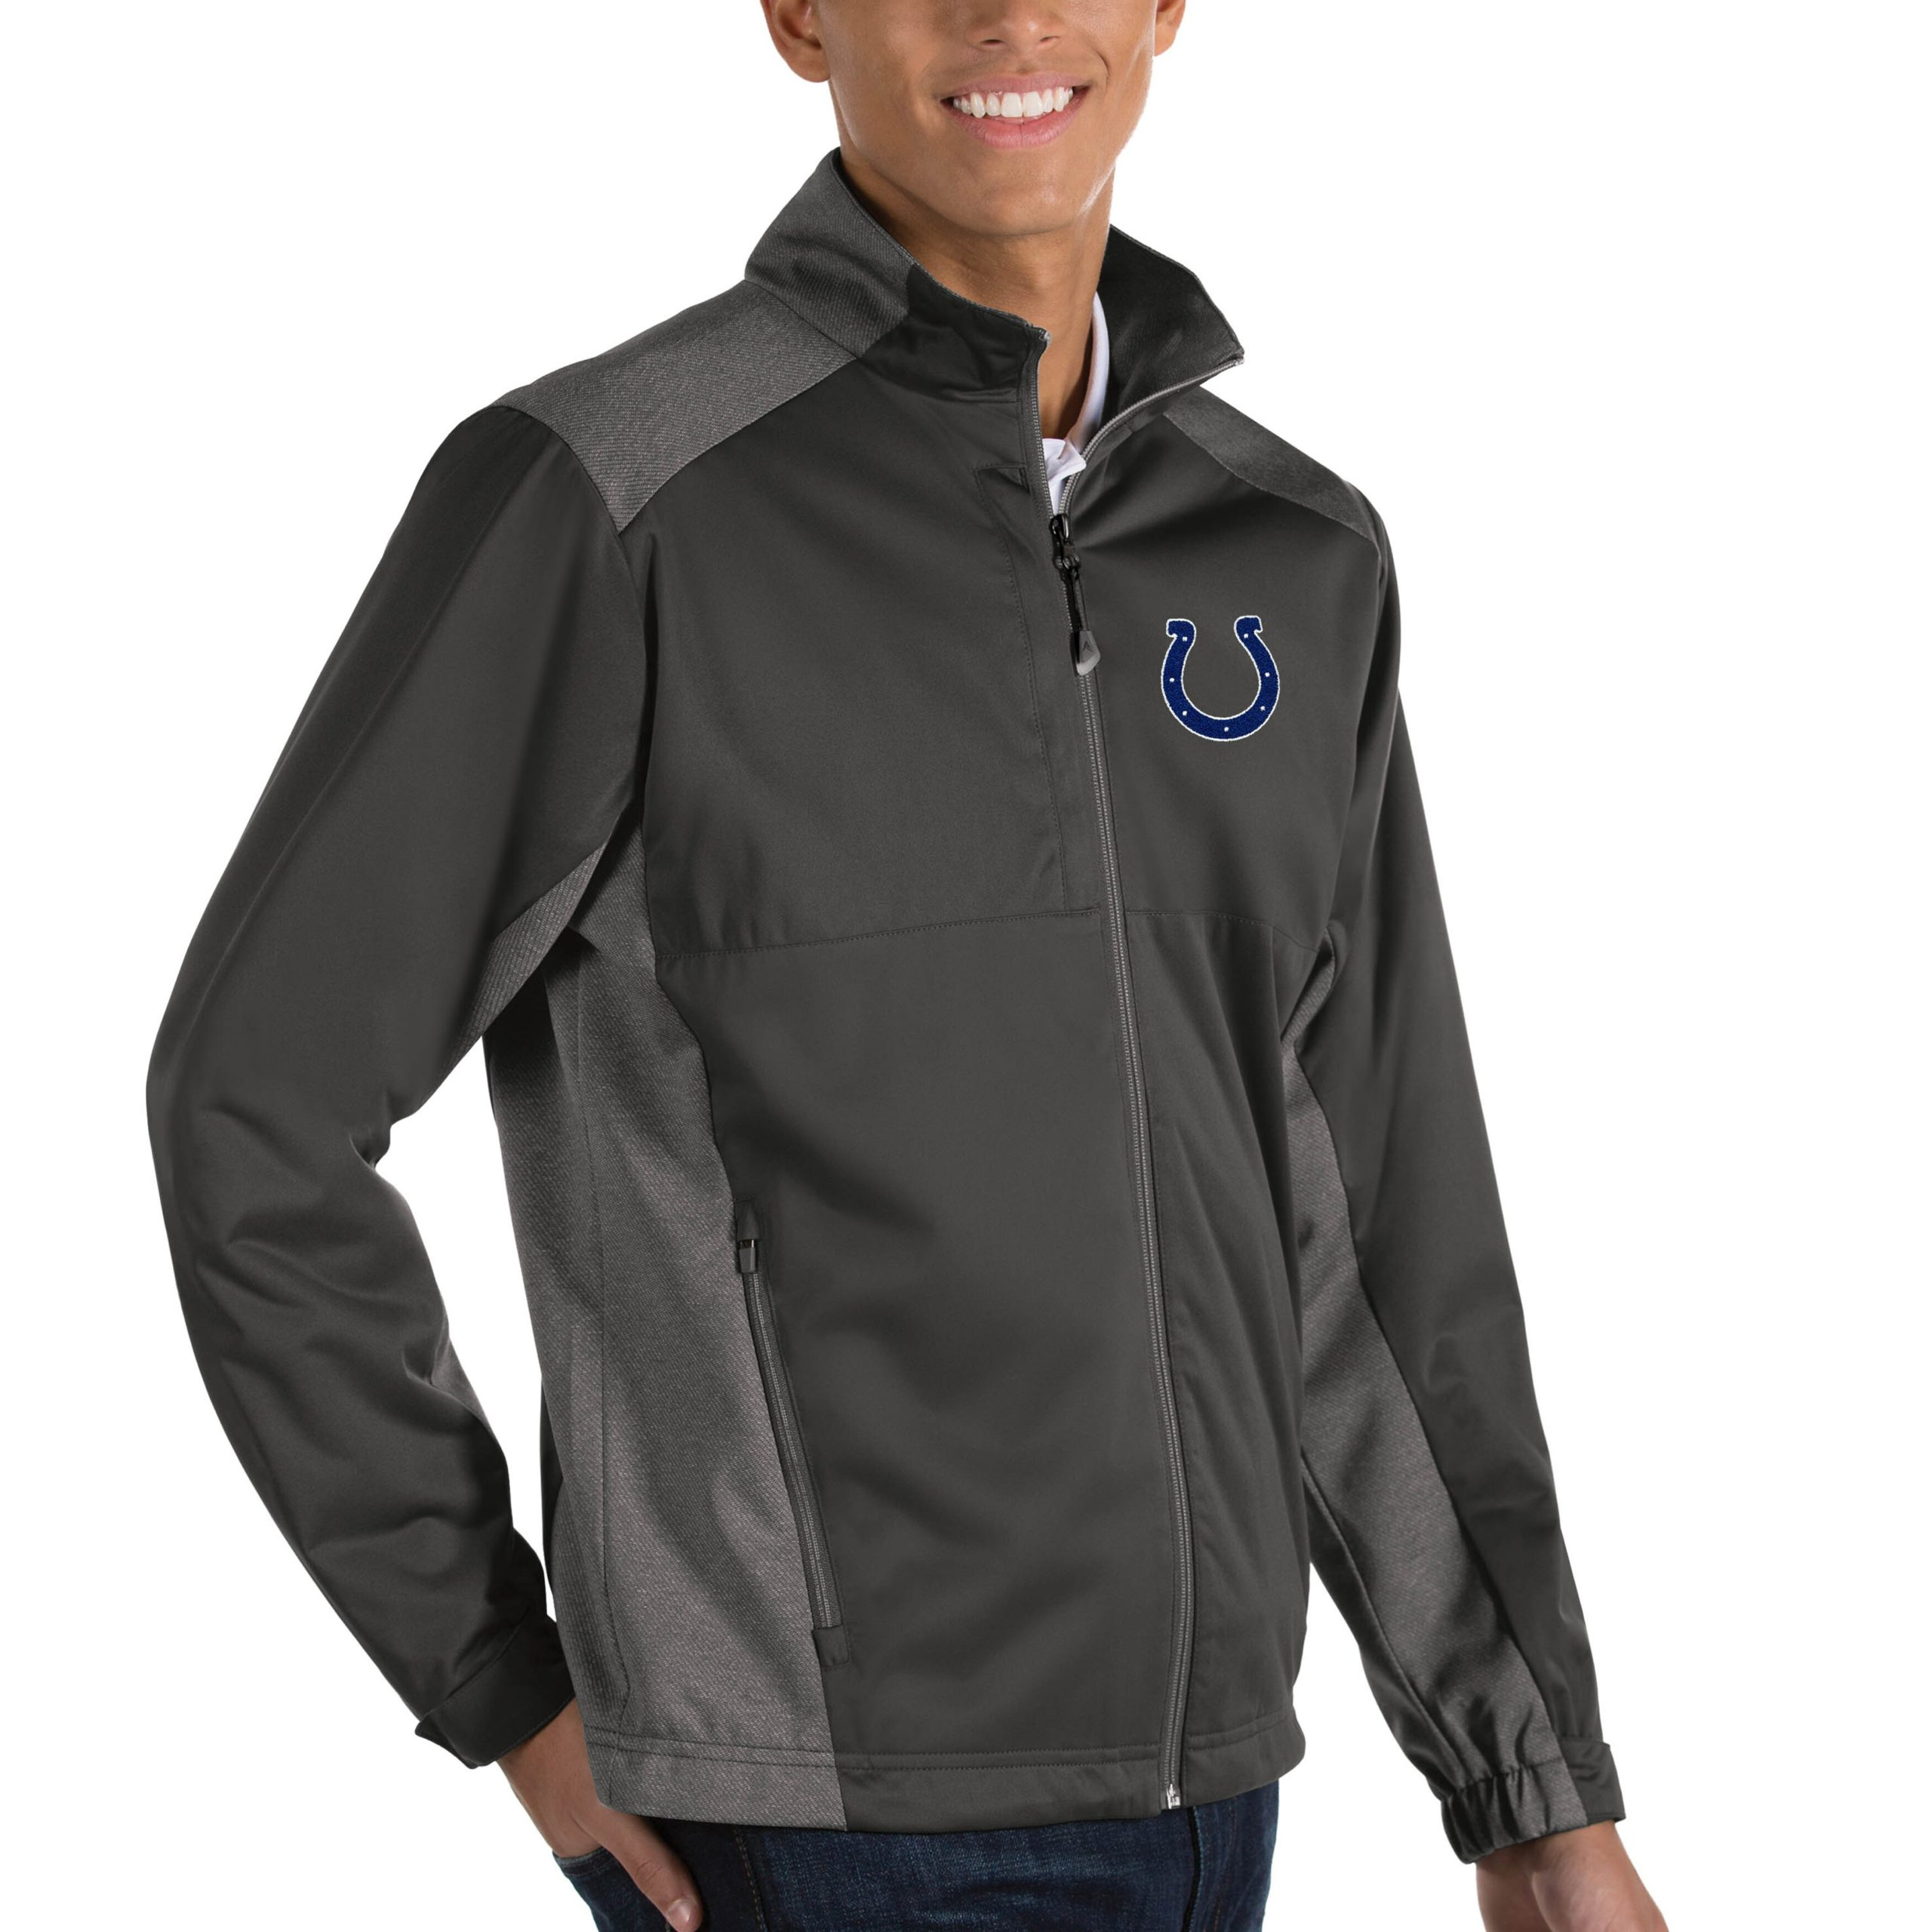 Indianapolis Colts Antigua Revolve Big & Tall Full-Zip Jacket - Heather Charcoal